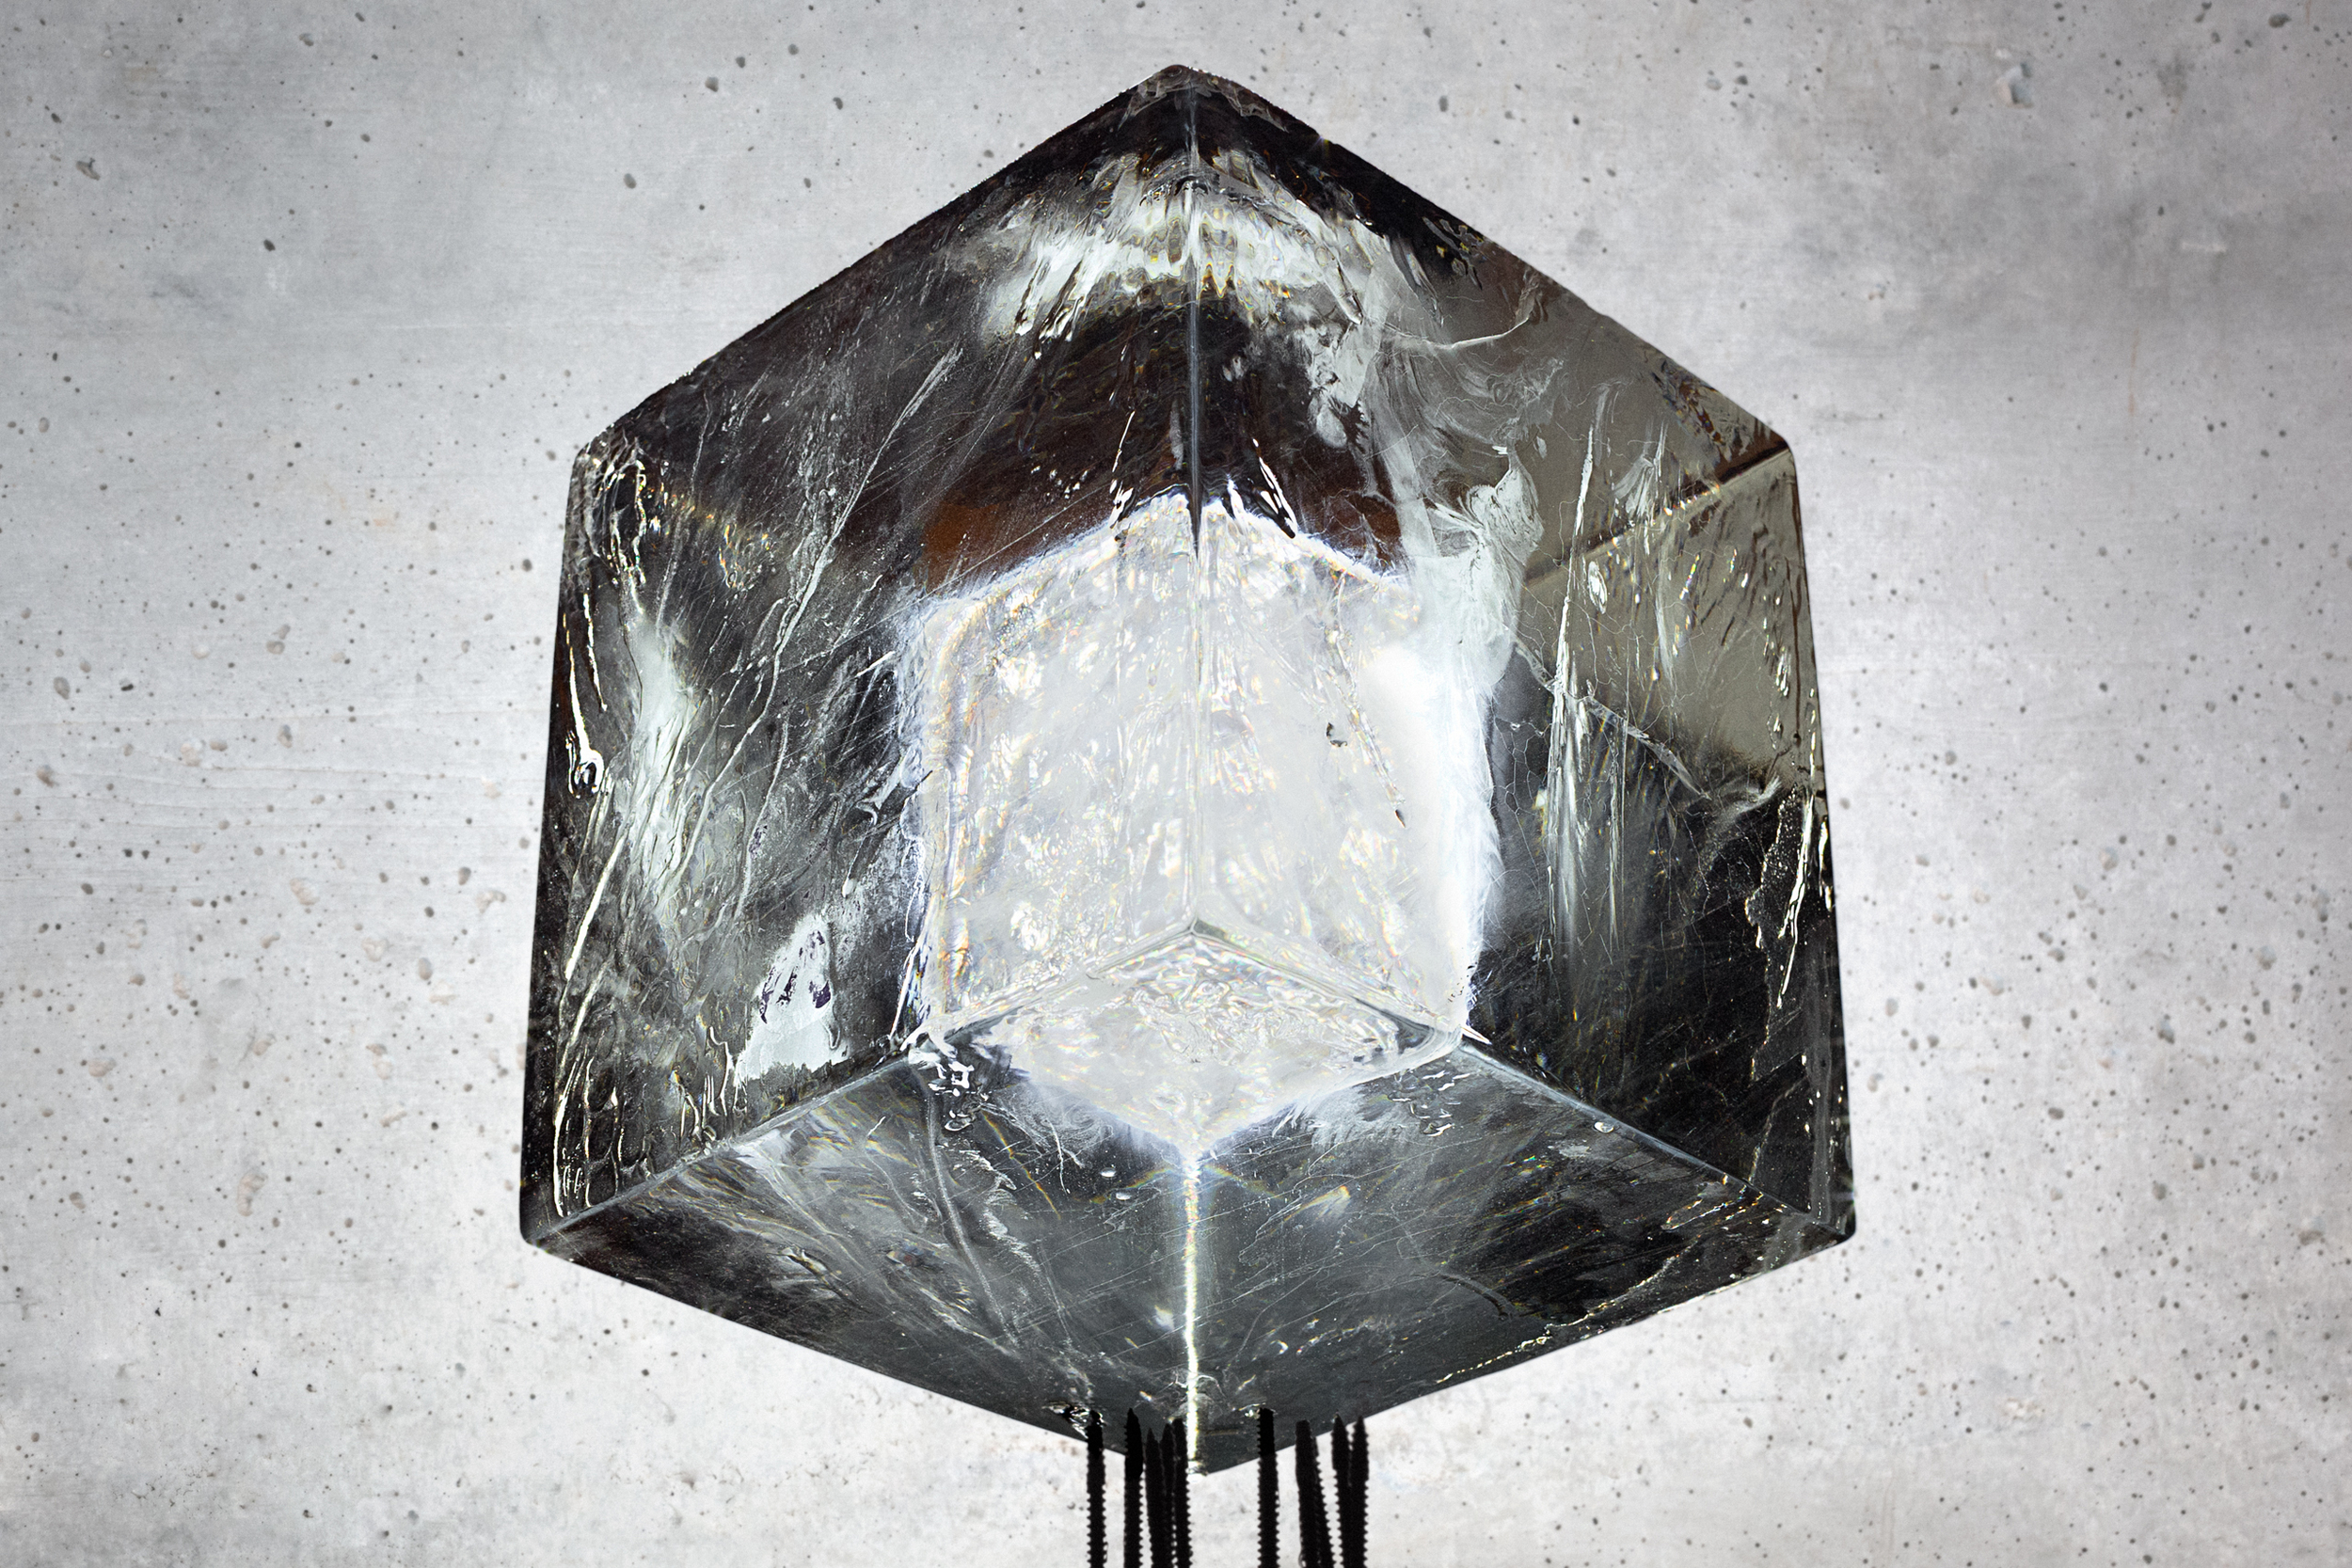 Ice Plate 6, Private works